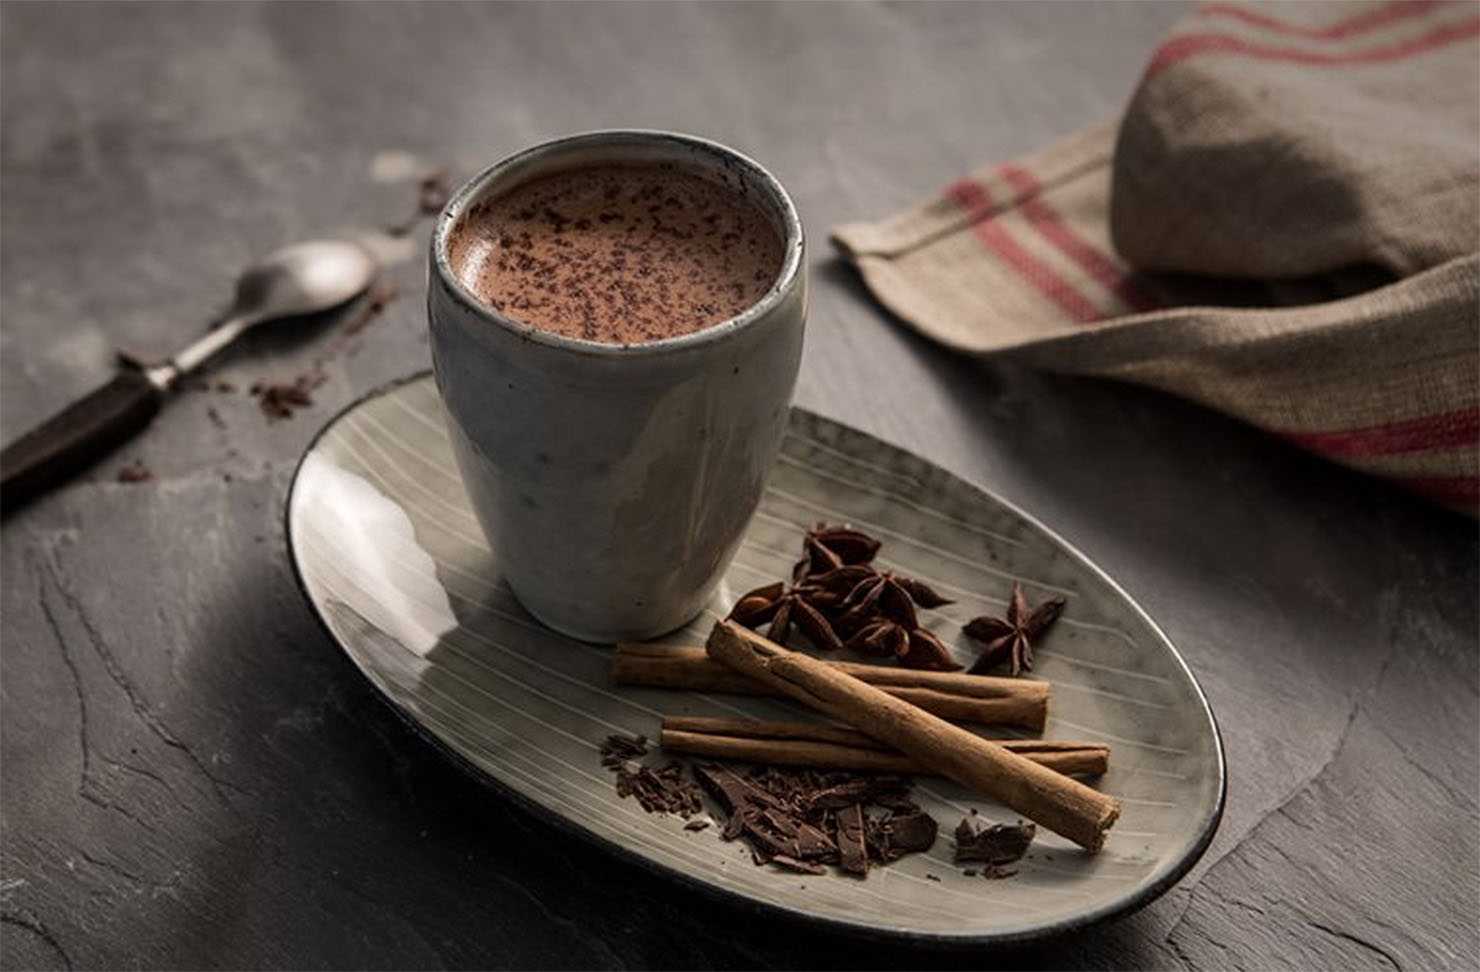 Spiced hot chocolate at Founders cafe